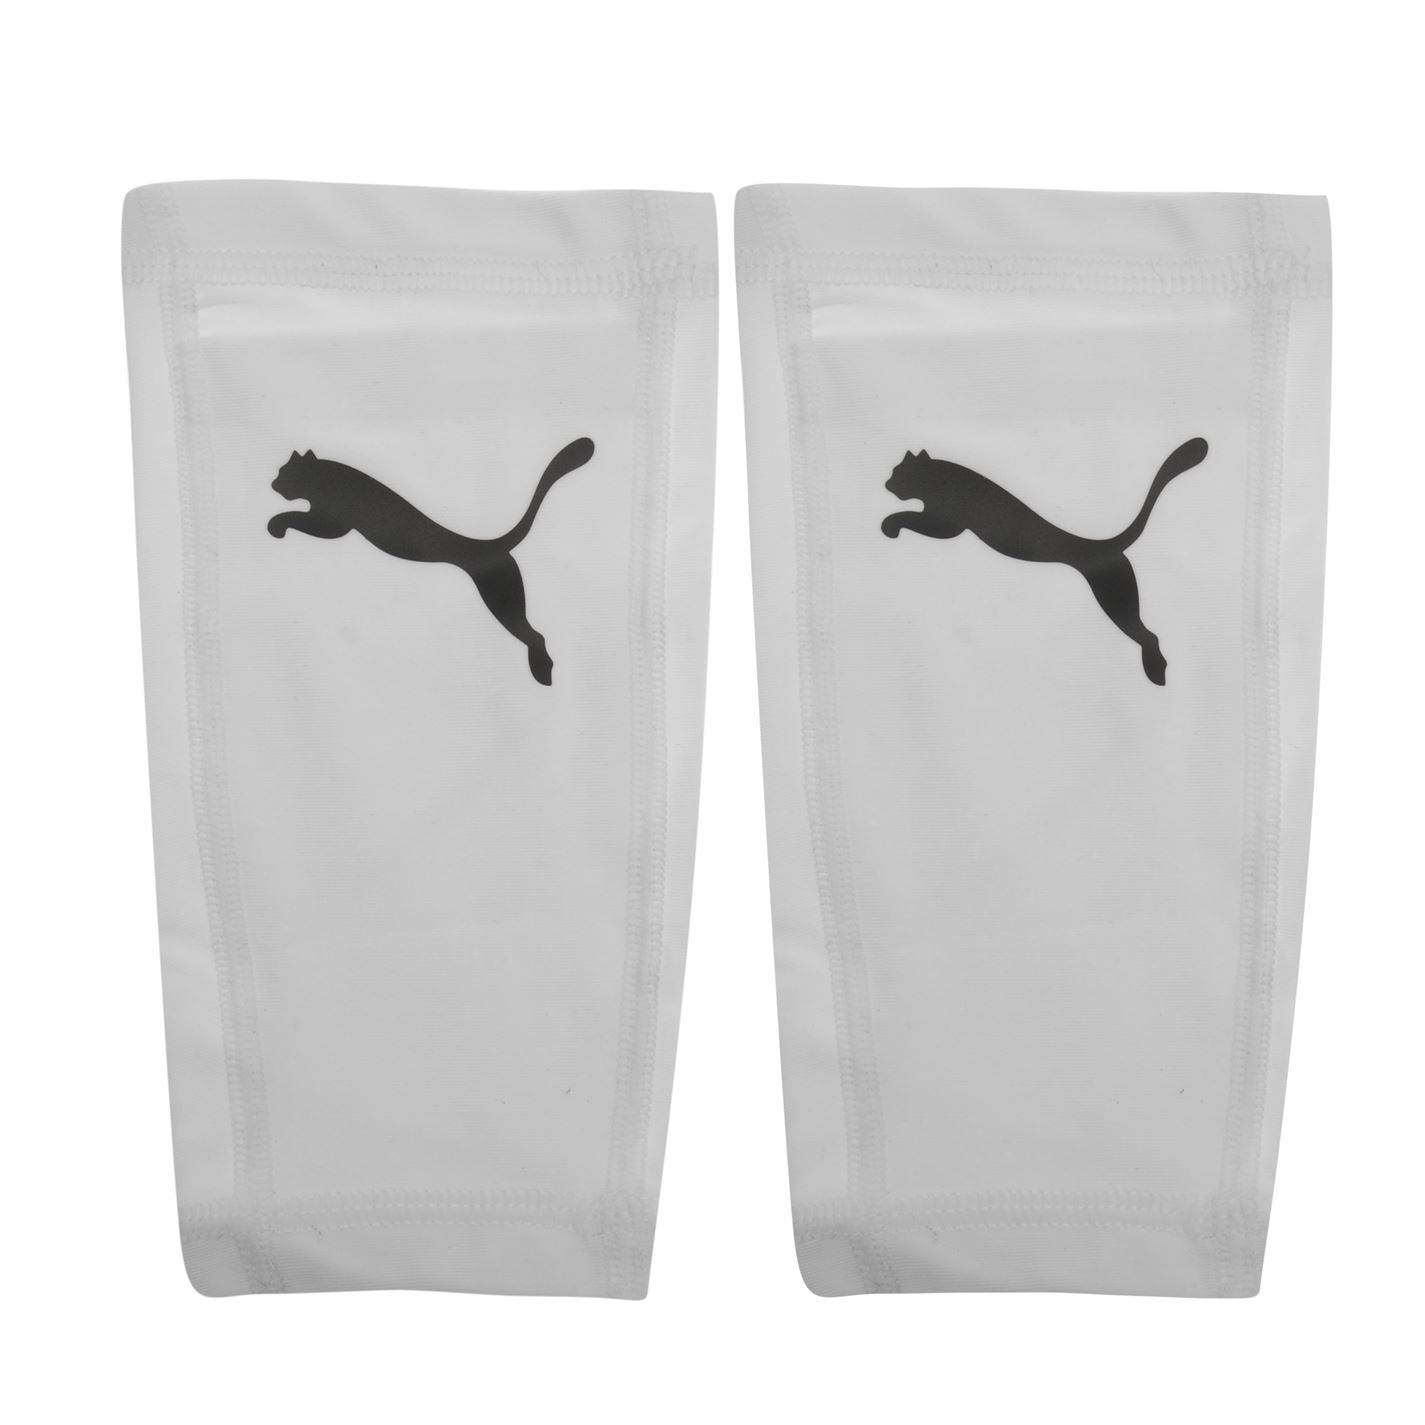 Puma-Unisex-One-Slip-Shin-Guard-In-Pad-Lightweight-Football thumbnail 7